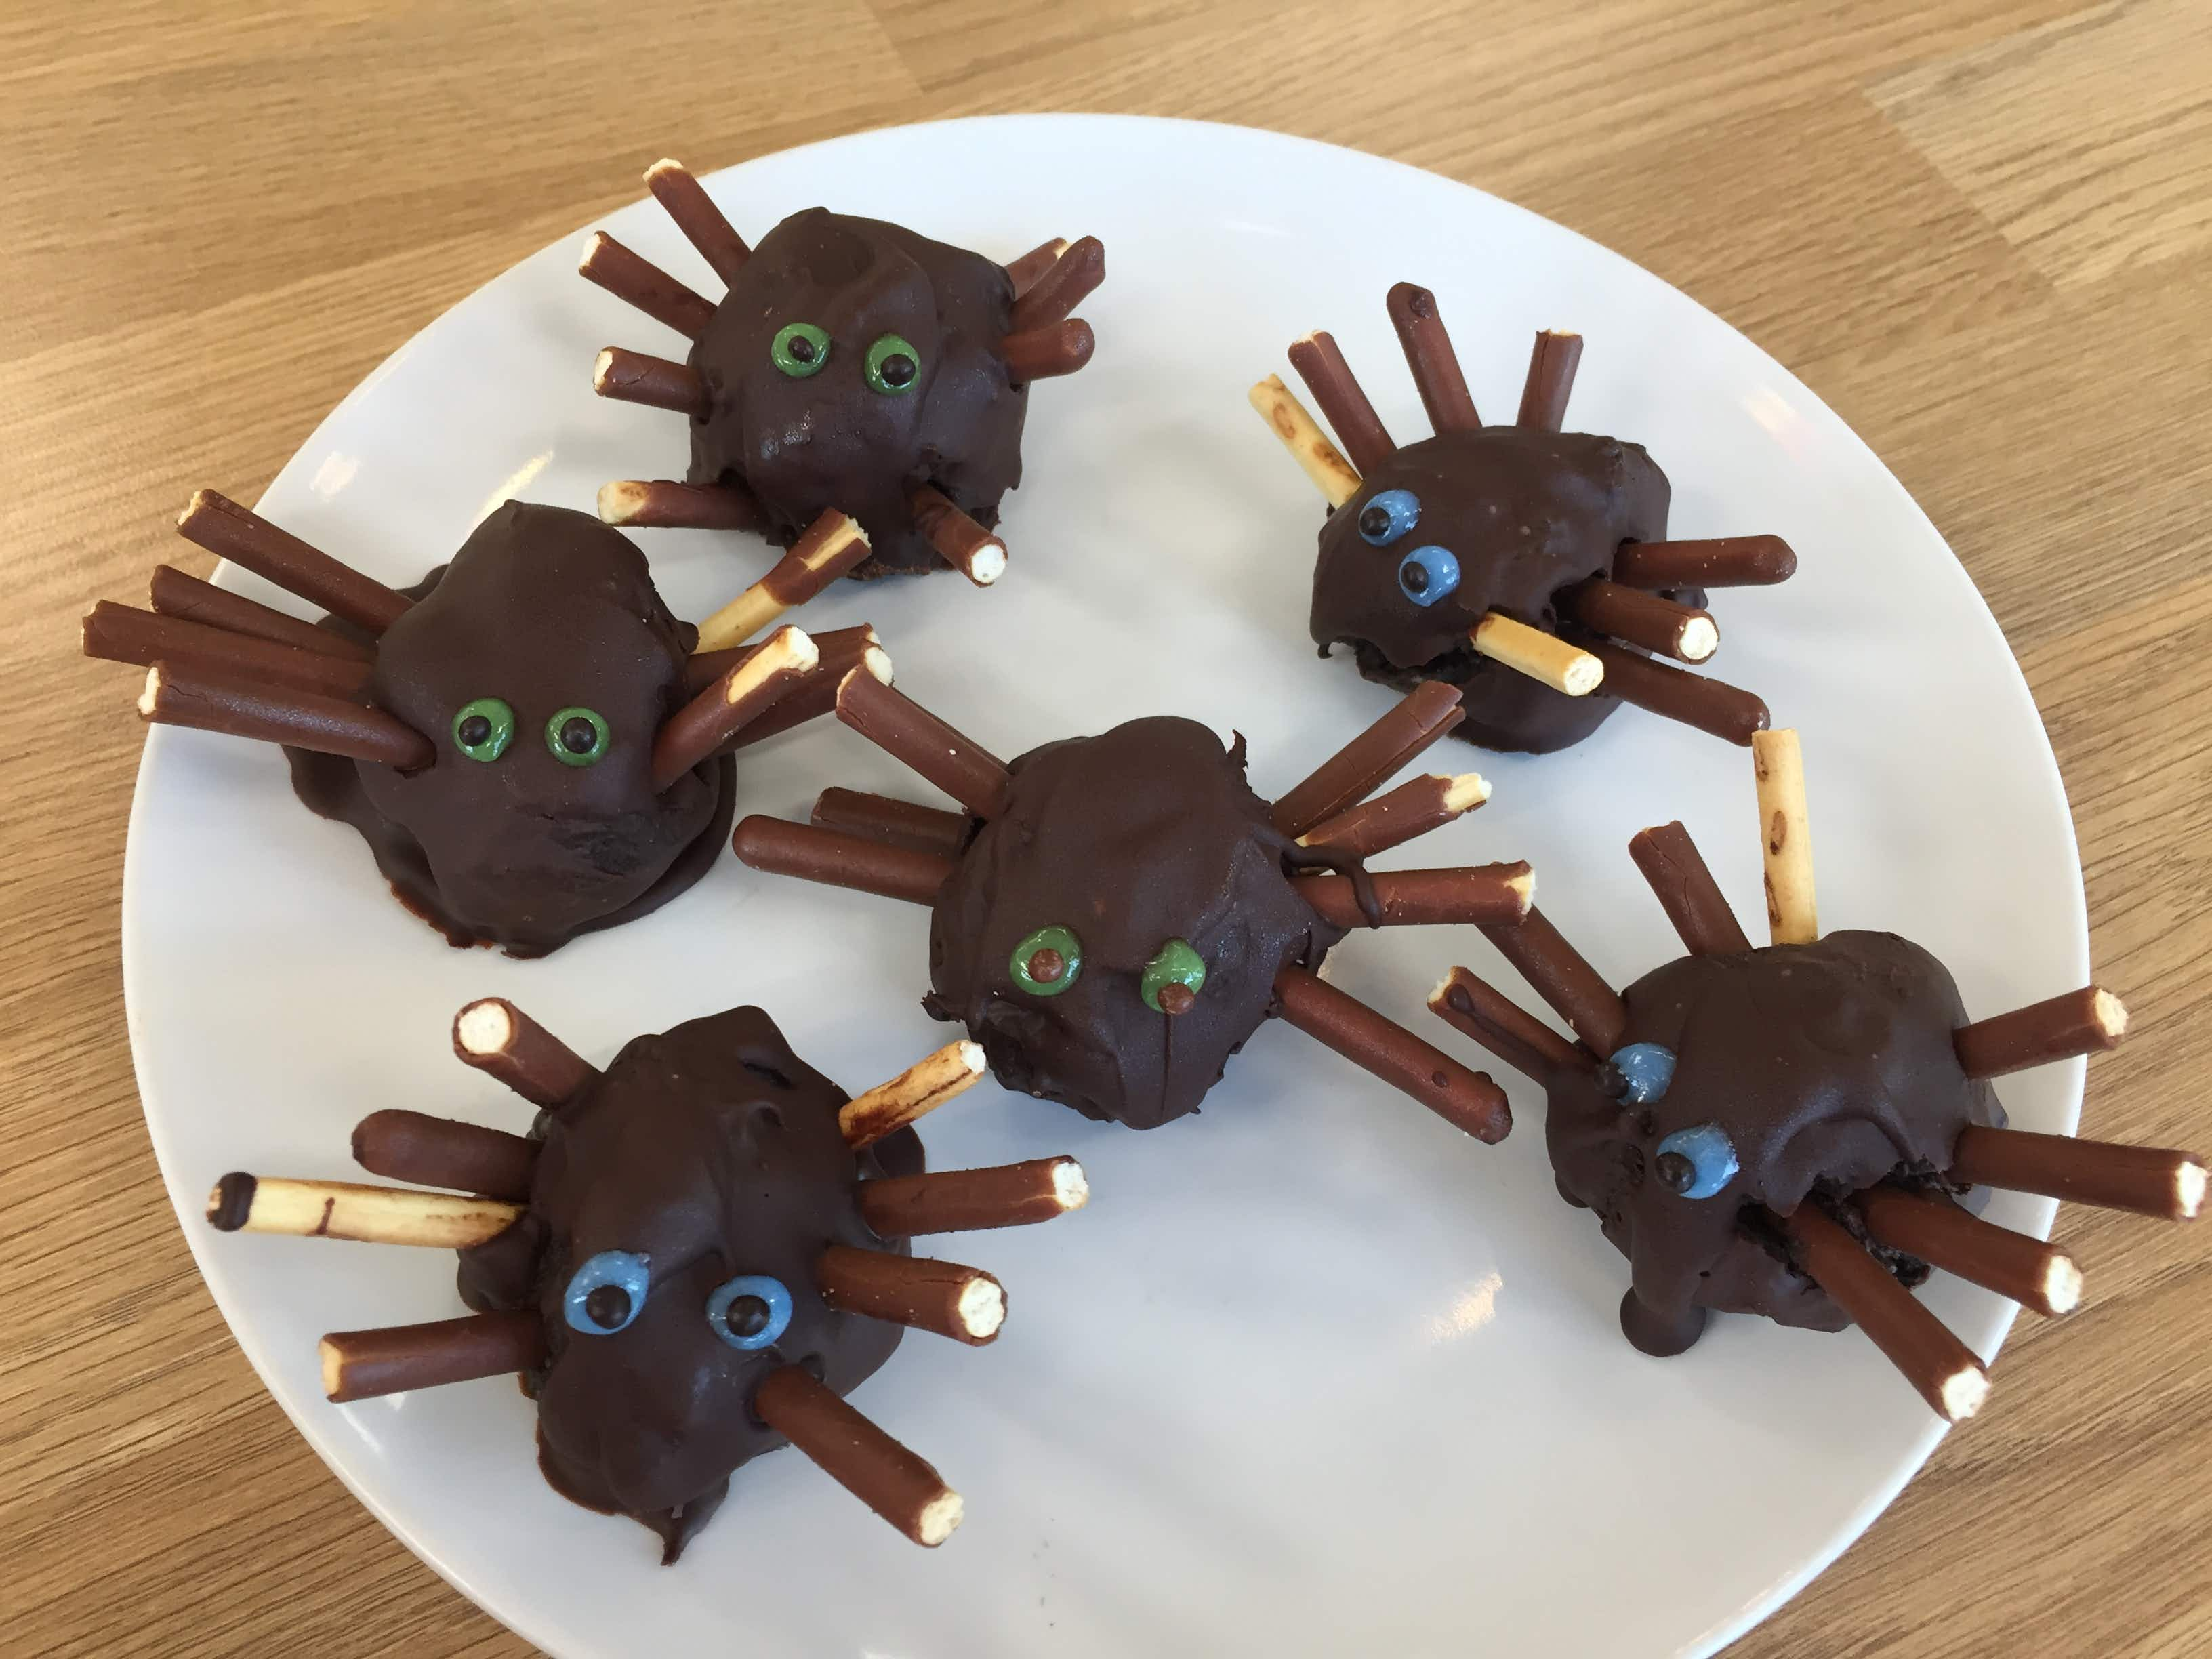 Rainy day activity: make your own chocolate spiders